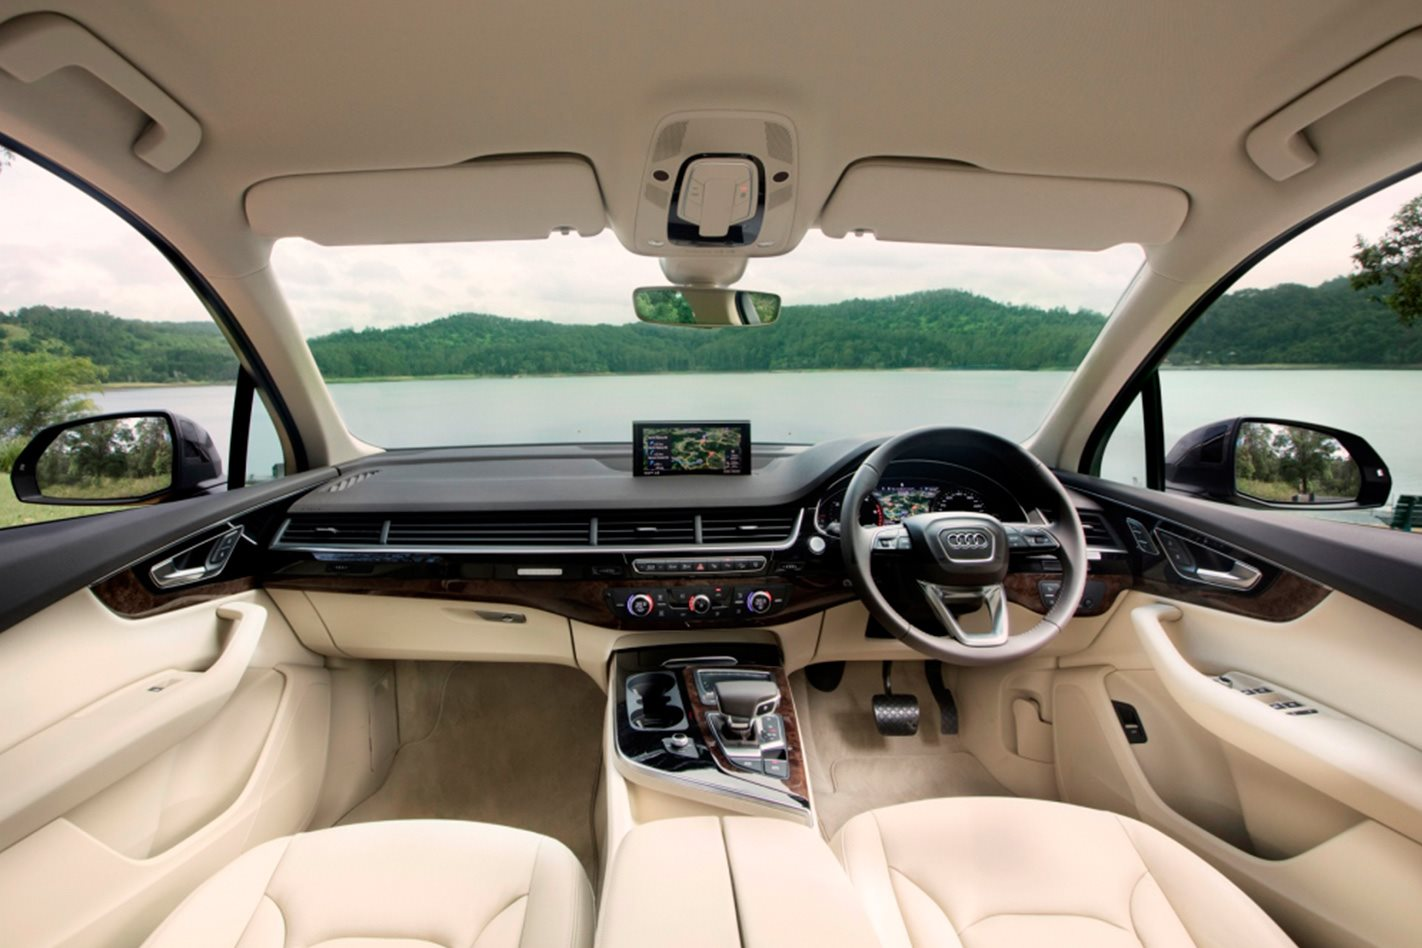 Audi Q7 Review, Price & Features